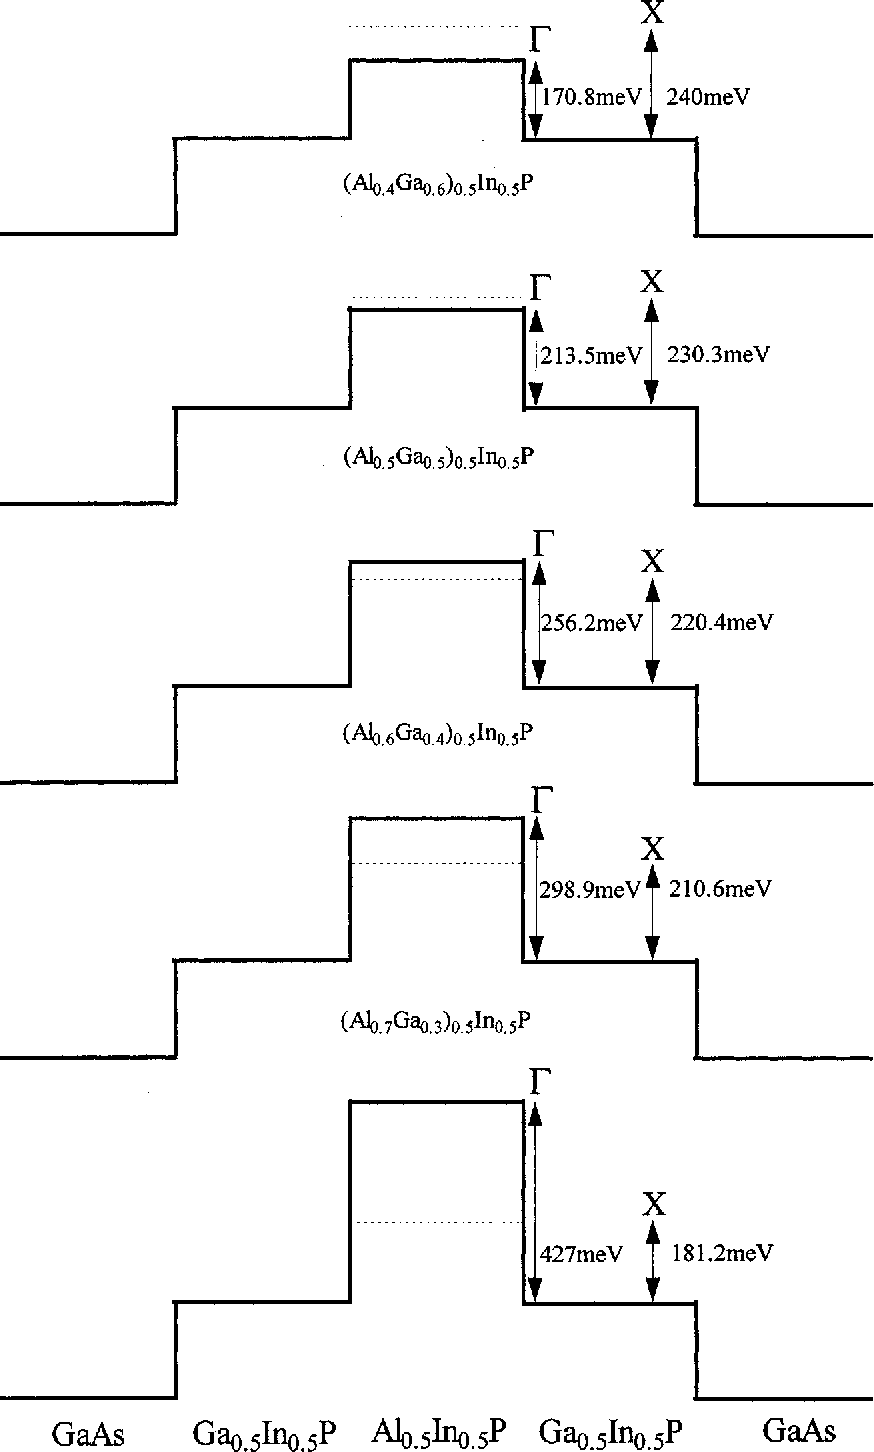 hight resolution of simplified conduction band diagrams showing the direct and indirect cases considered in